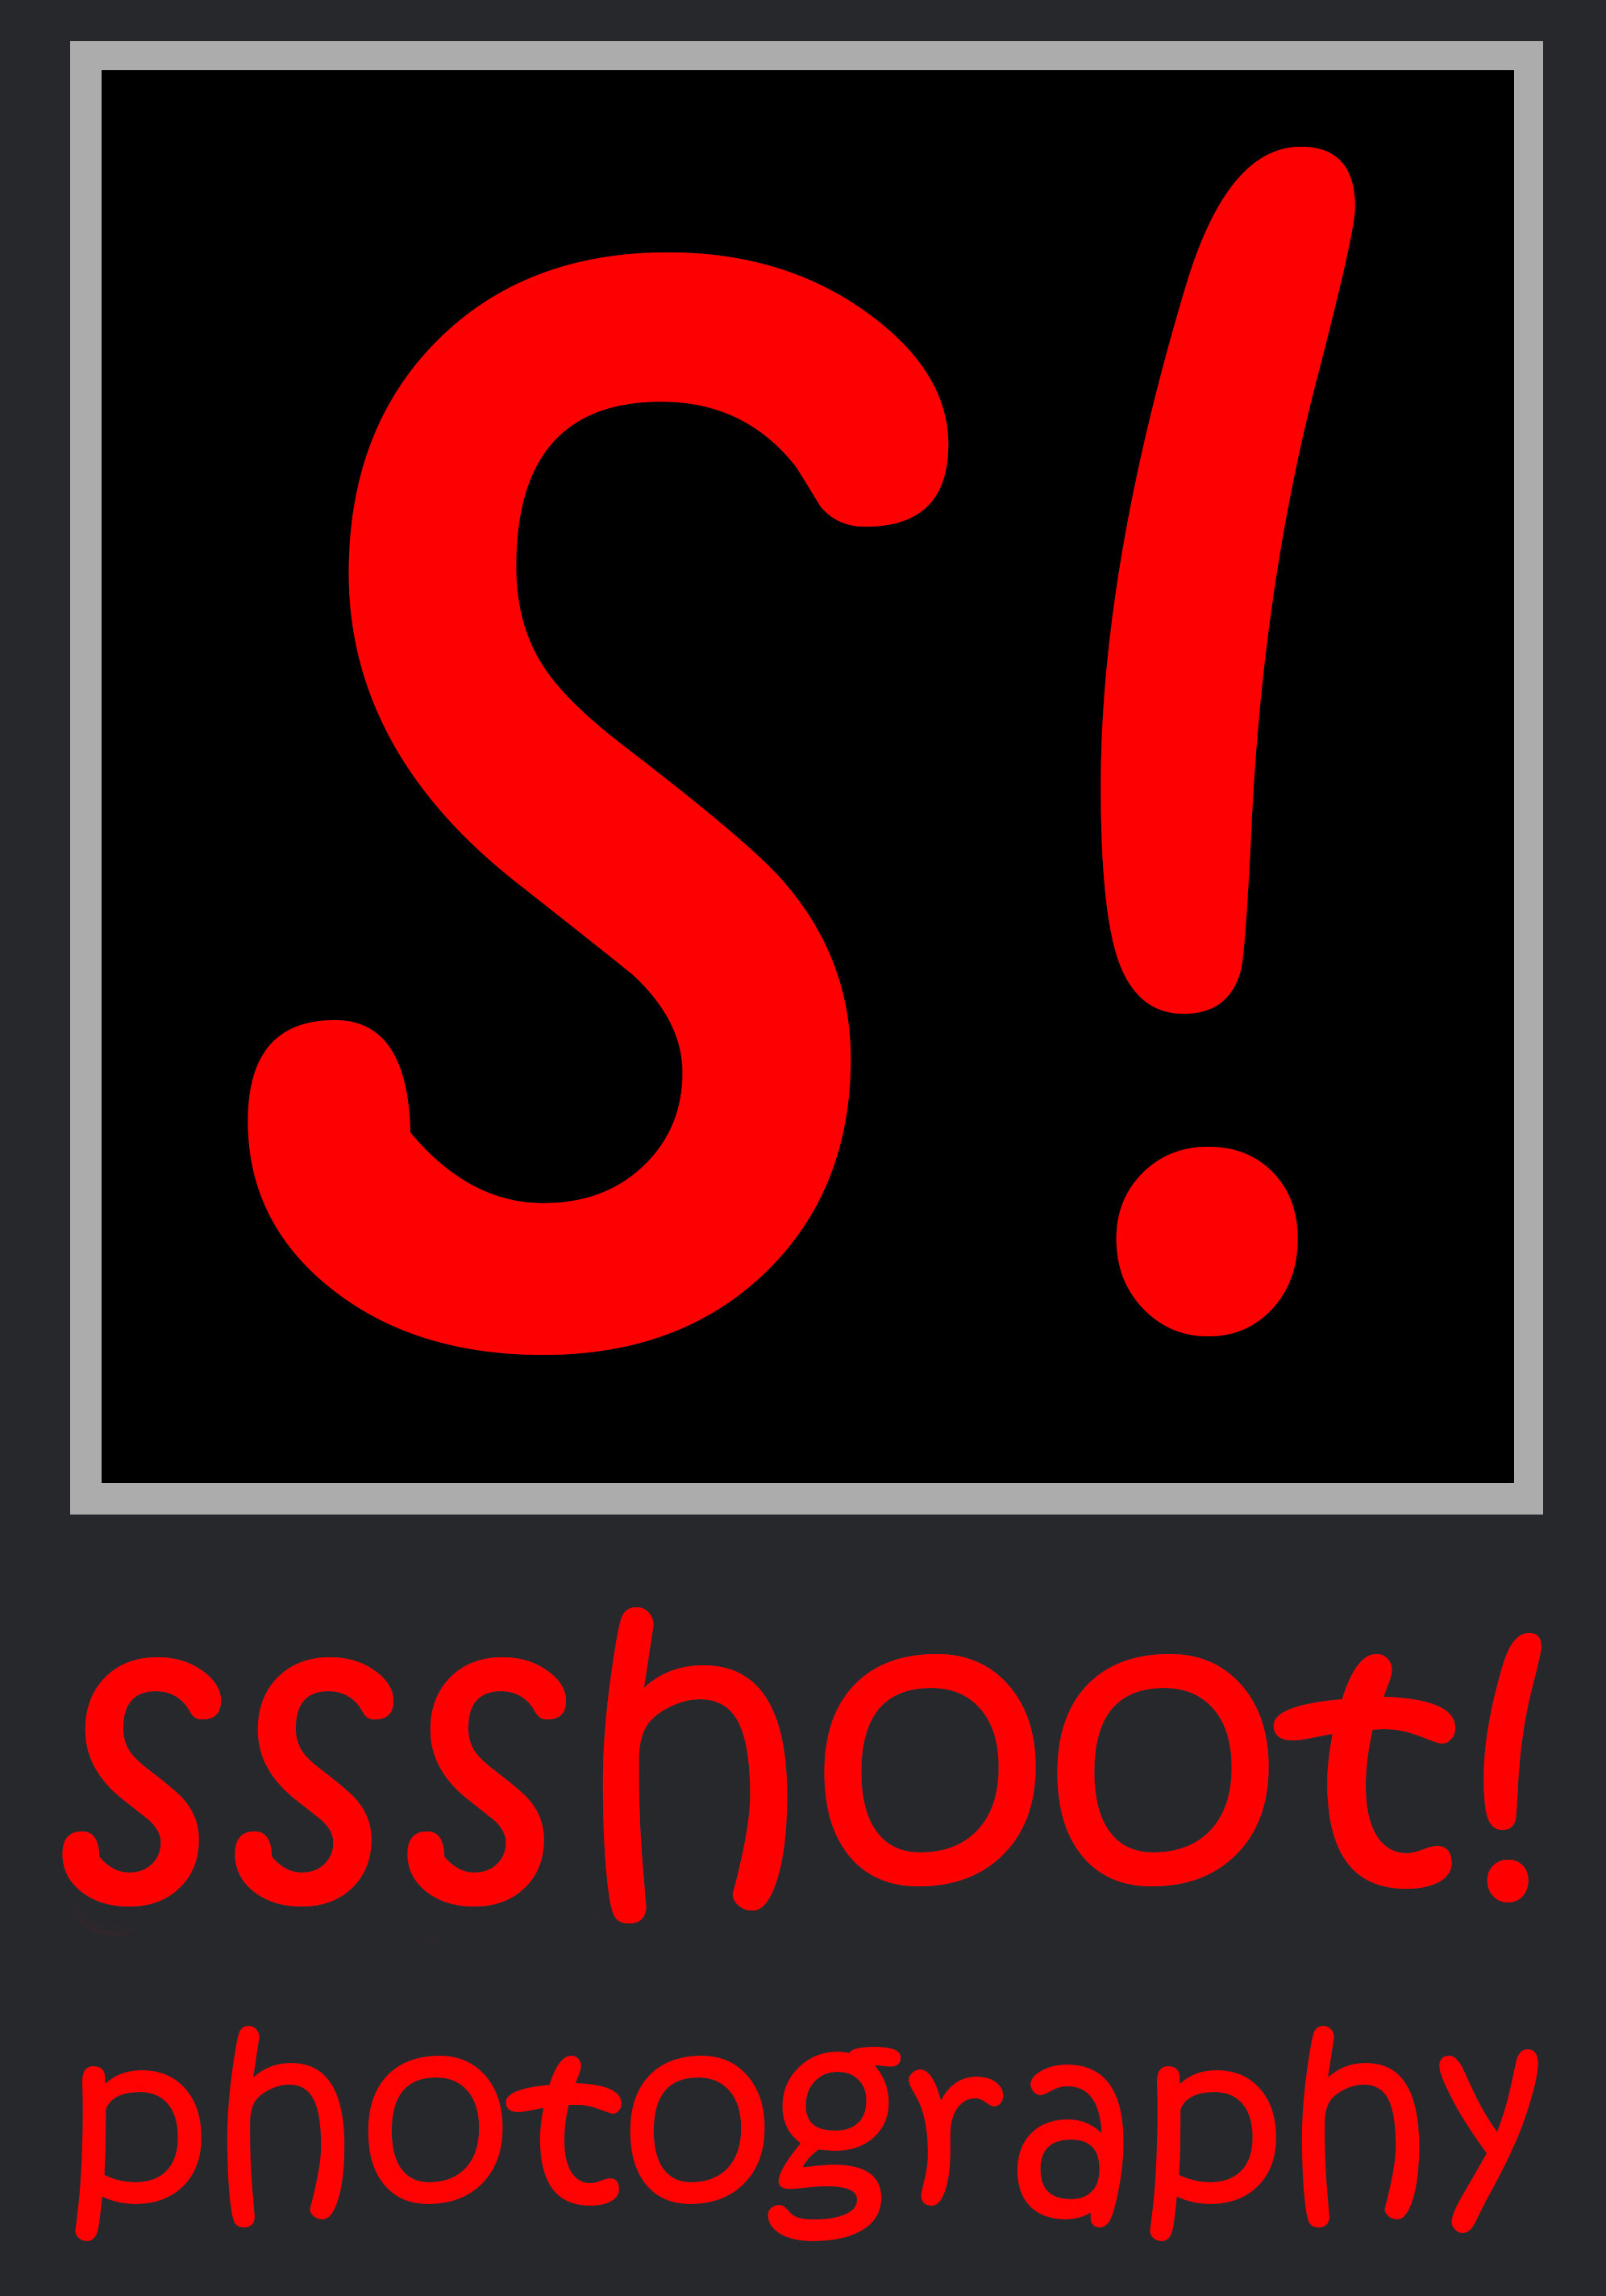 ssshoot! photography